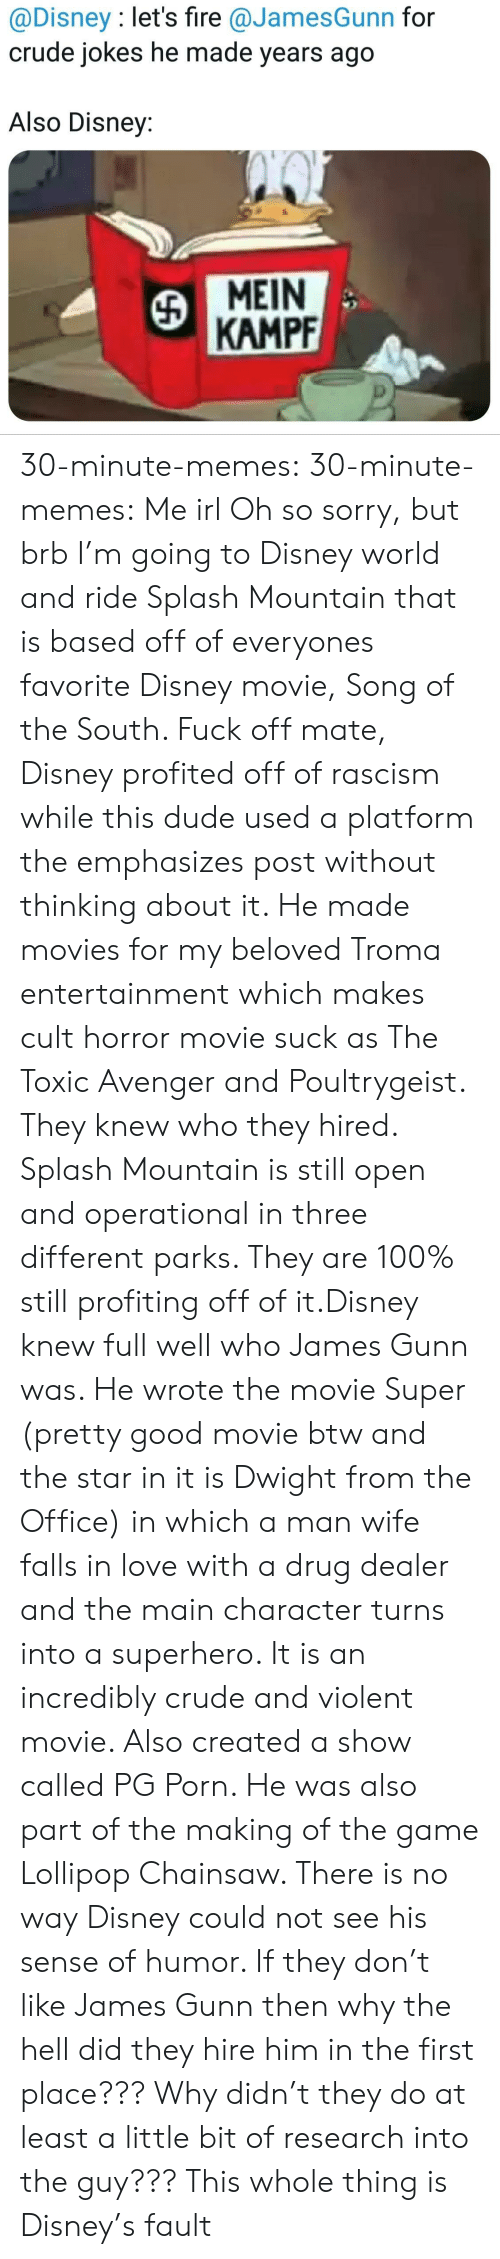 Anaconda, Disney, and Disney World: @Disney : let's fire @JamesGunn for  crude jokes he made years ago  Also Disney:  MEIN  KAMPF 30-minute-memes: 30-minute-memes: Me irl Oh so sorry, but brb I'm going to Disney world and ride Splash Mountain that is based off of everyones favorite Disney movie, Song of the South.  Fuck off mate, Disney profited off of rascism while this dude used a platform the emphasizes post without thinking about it. He made movies for my beloved Troma entertainment which makes cult horror movie suck as The Toxic Avenger and Poultrygeist. They knew who they hired.  Splash Mountain is still open and operational in three different parks. They are 100% still profiting off of it.Disney knew full well who James Gunn was. He wrote the movie Super (pretty good movie btw and the star in it is Dwight from the Office) in which a man wife falls in love with a drug dealer and the main character turns into a superhero. It is an incredibly crude and violent movie. Also created a show called PG Porn. He was also part of the making of the game Lollipop Chainsaw. There is no way Disney could not see his sense of humor. If they don't like James Gunn then why the hell did they hire him in the first place??? Why didn't they do at least a little bit of research into the guy??? This whole thing is Disney's fault